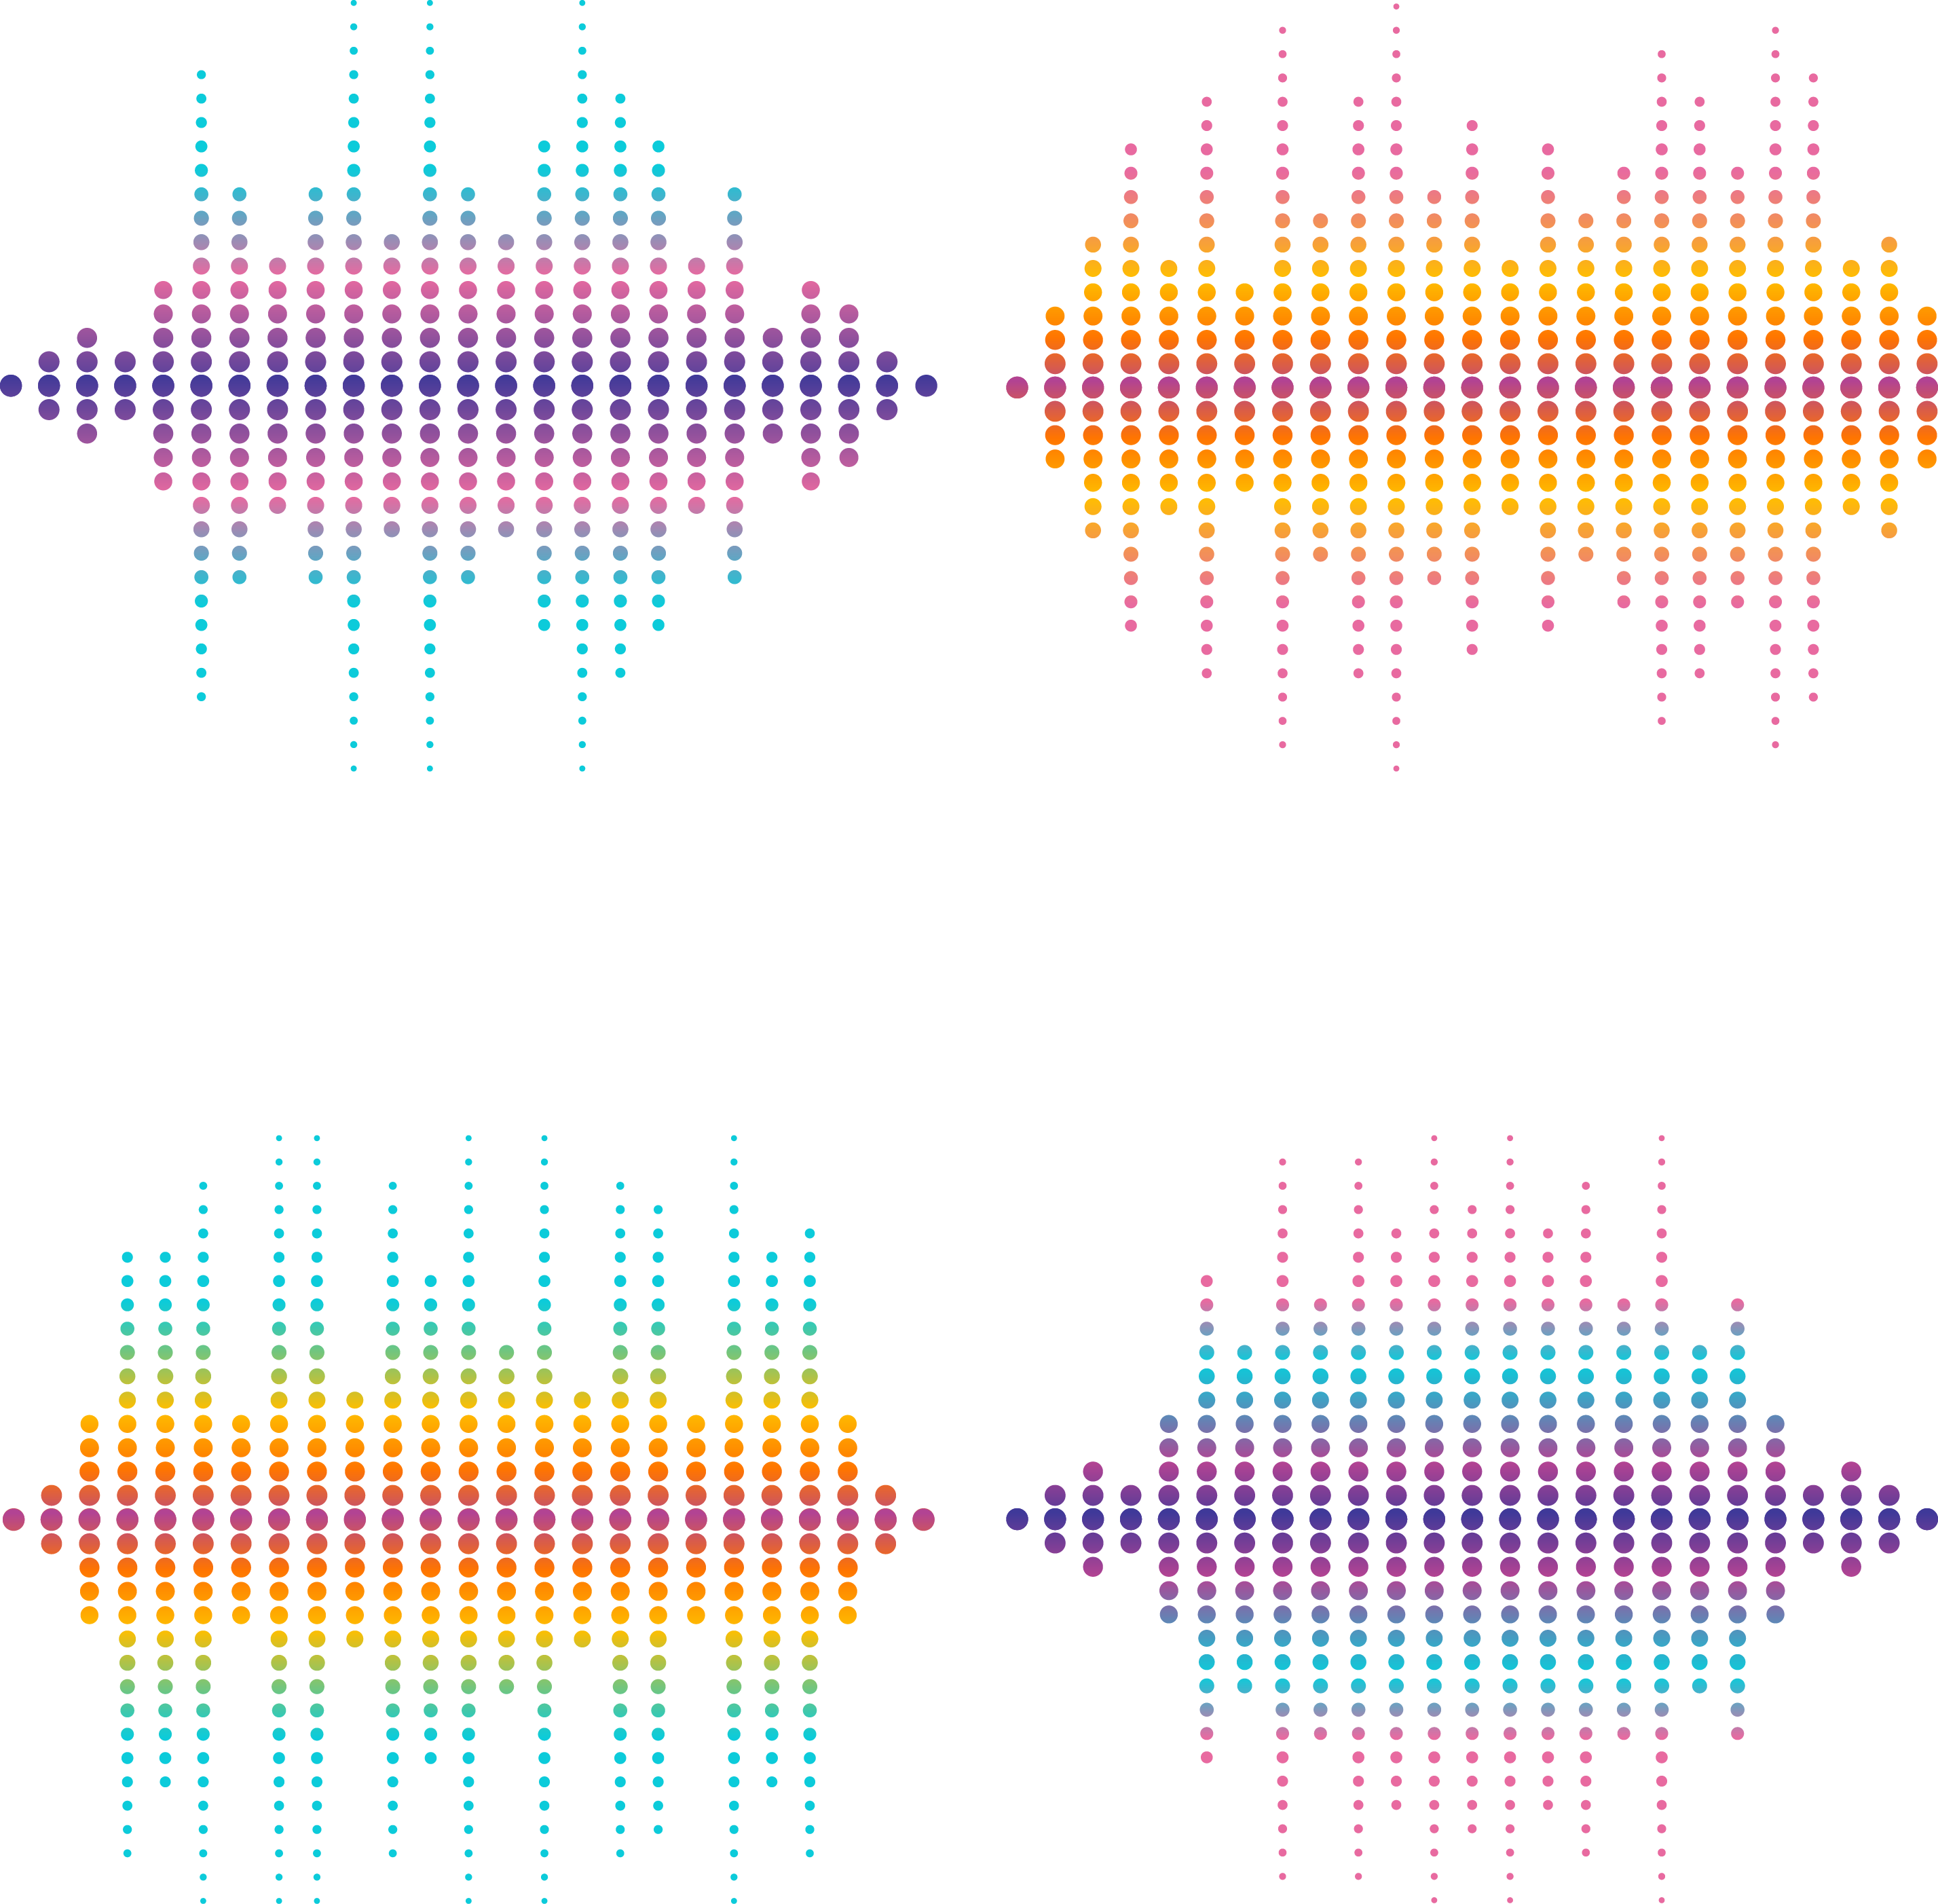 Sound Graphic Pixelation Diagram Square Design PNG Image